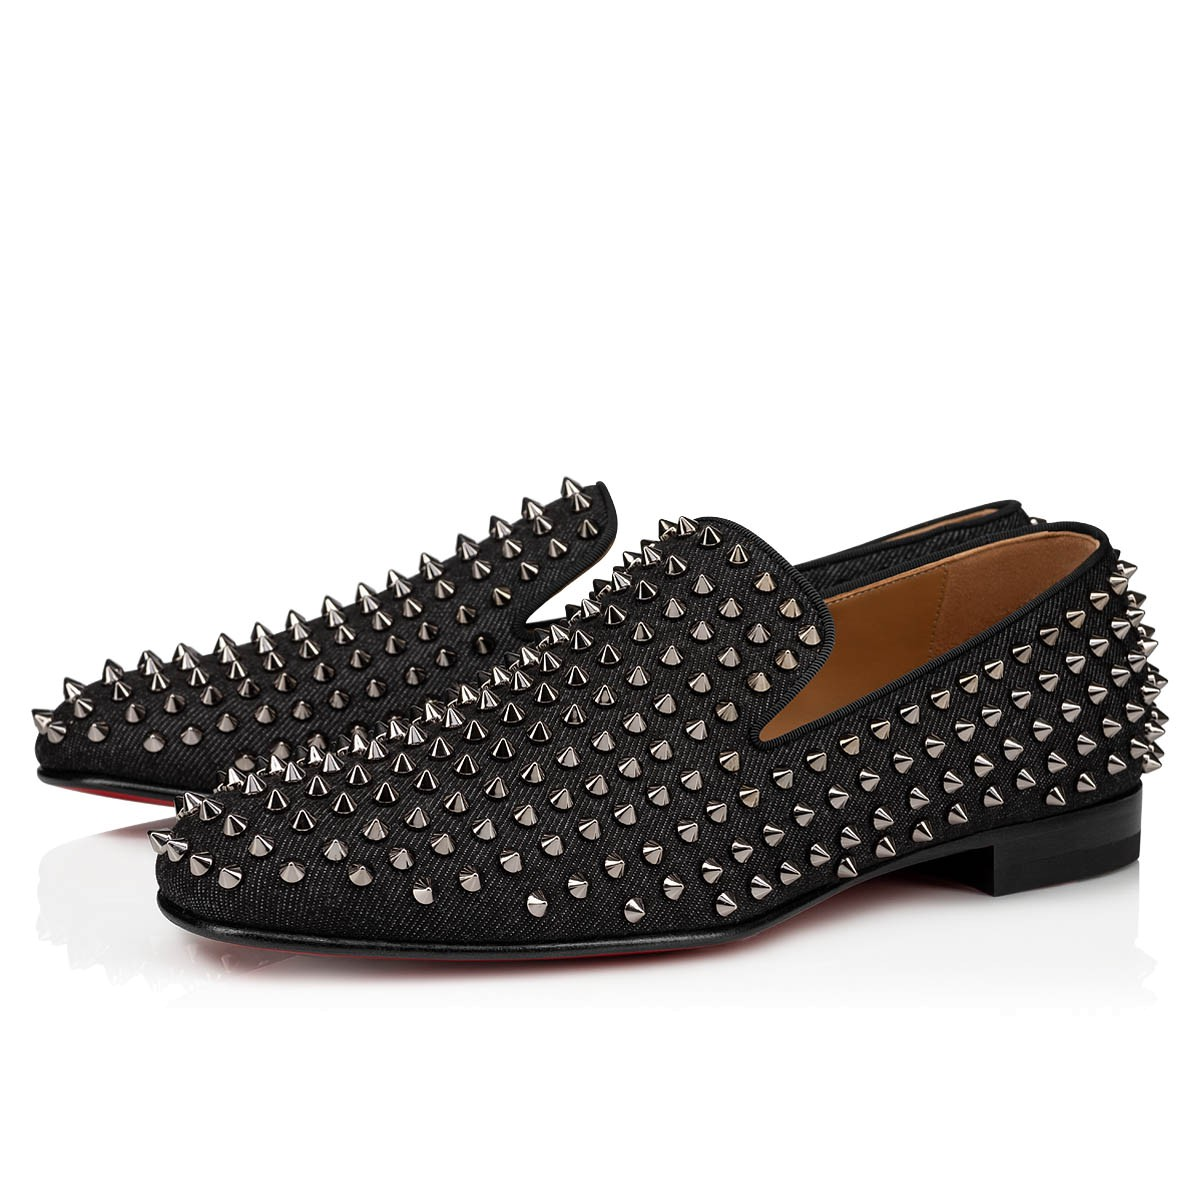 Souliers - Rollerboy Spikes - Christian Louboutin